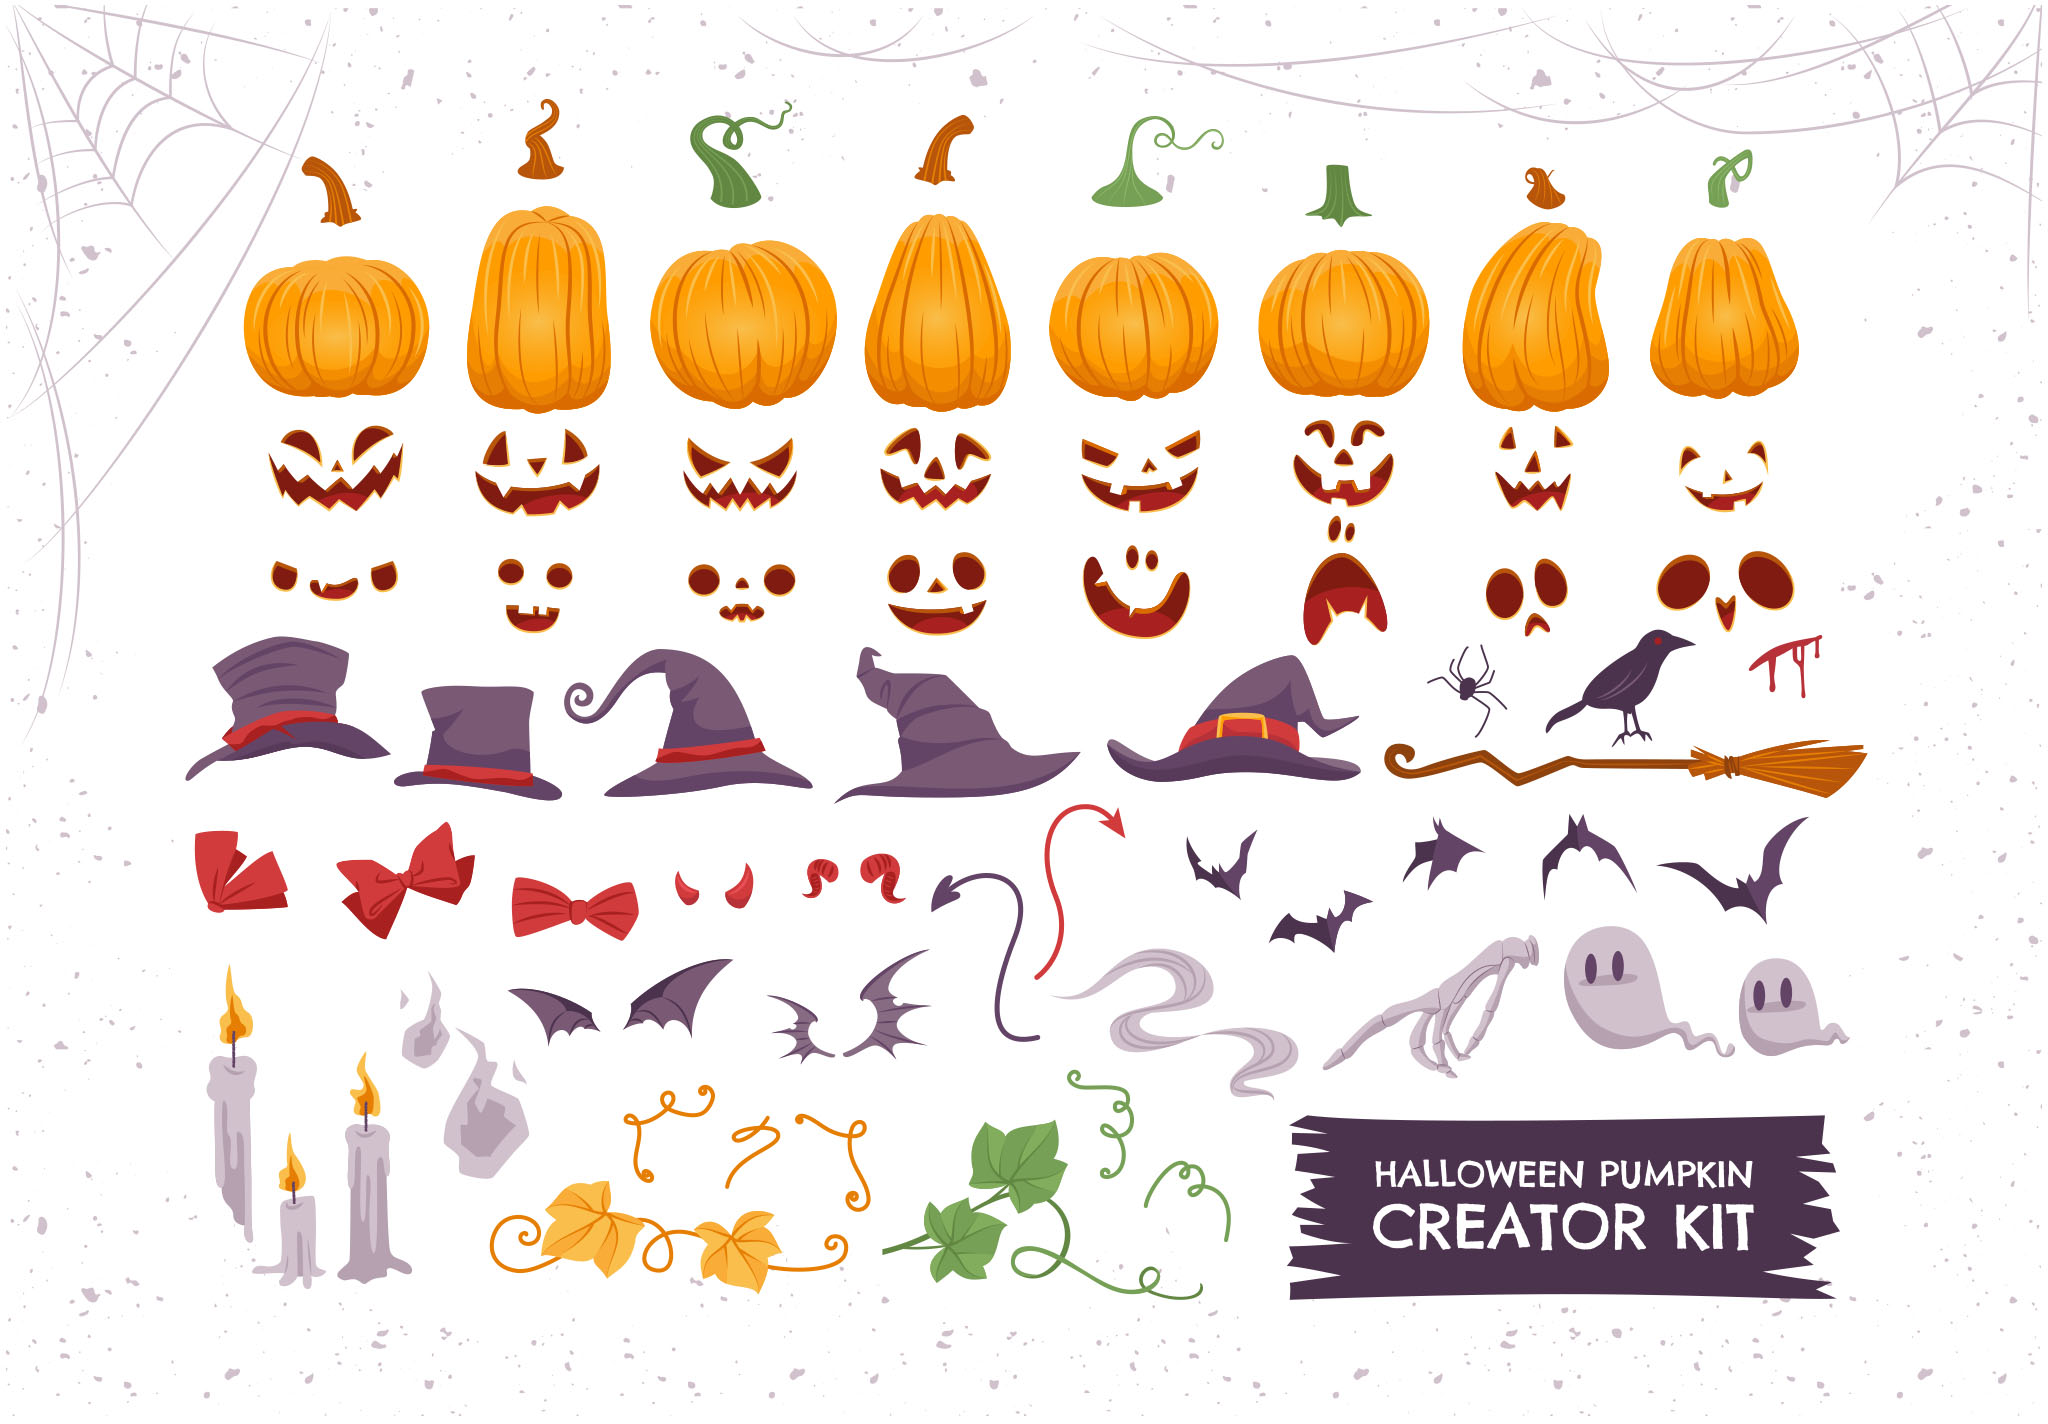 Halloween Pumpkin Vector Illustrations for Photoshop & Illustrator